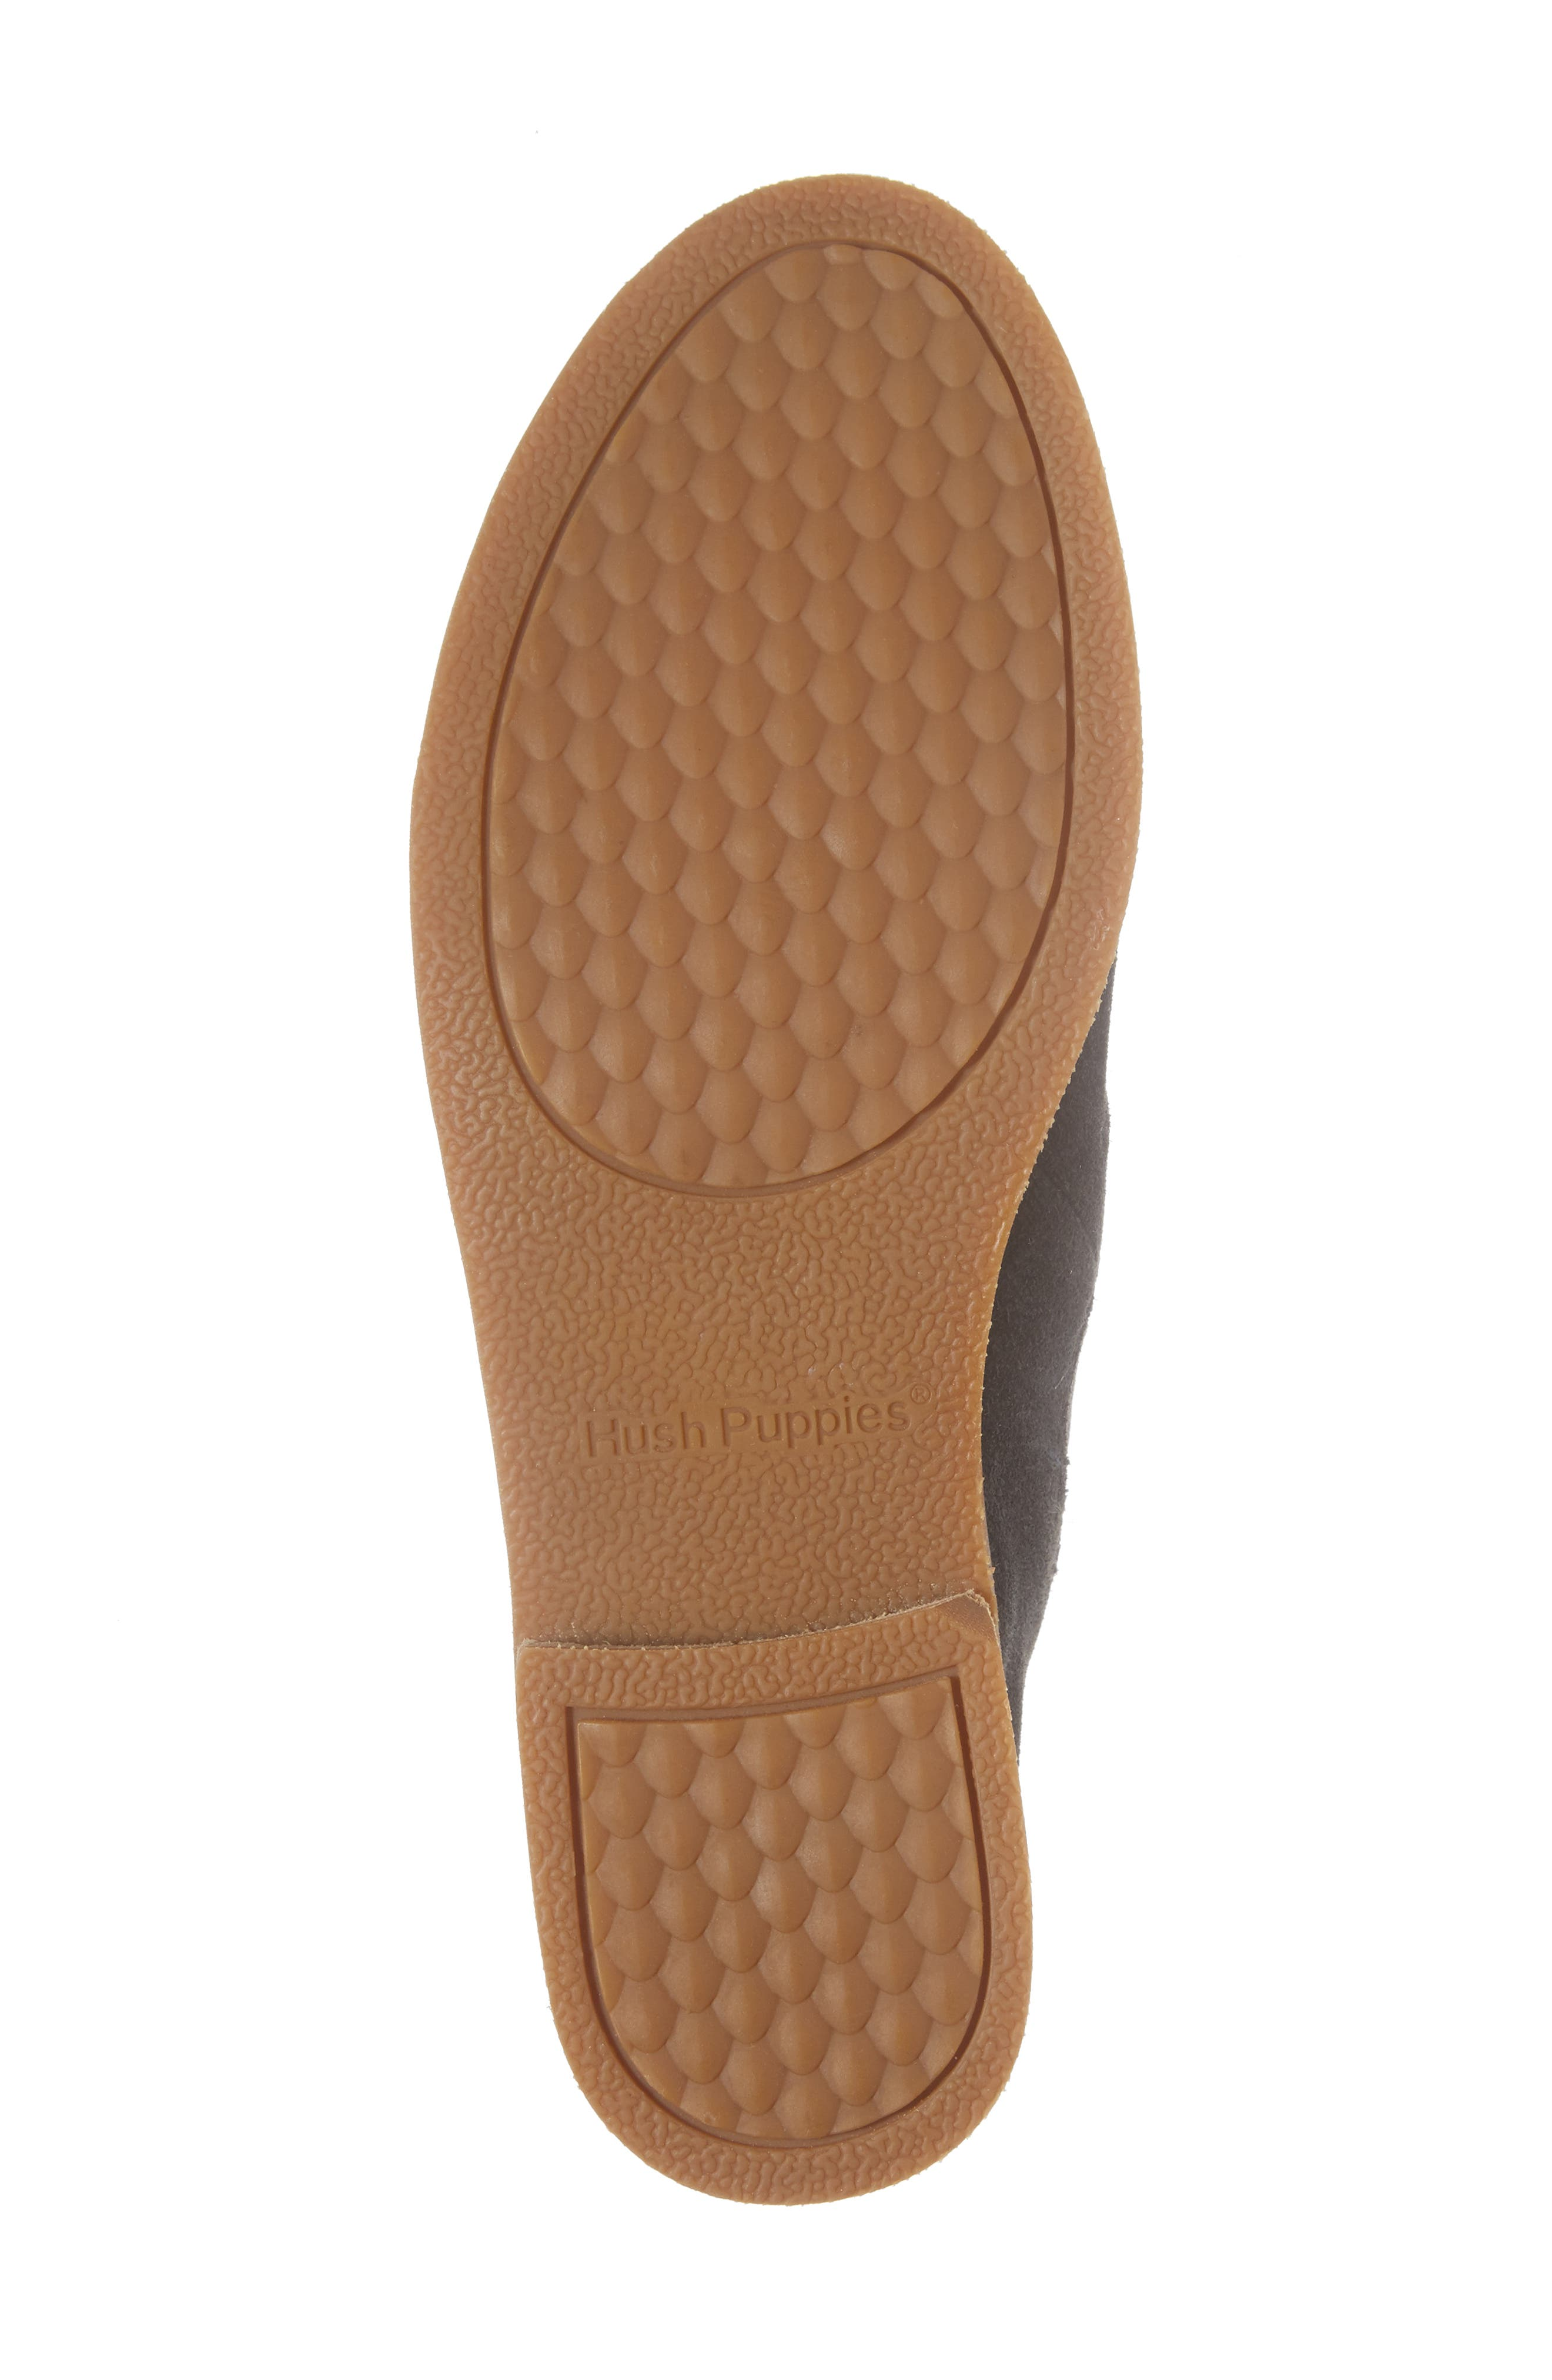 Analise Clever Flat,                             Alternate thumbnail 6, color,                             Granite Gray Suede